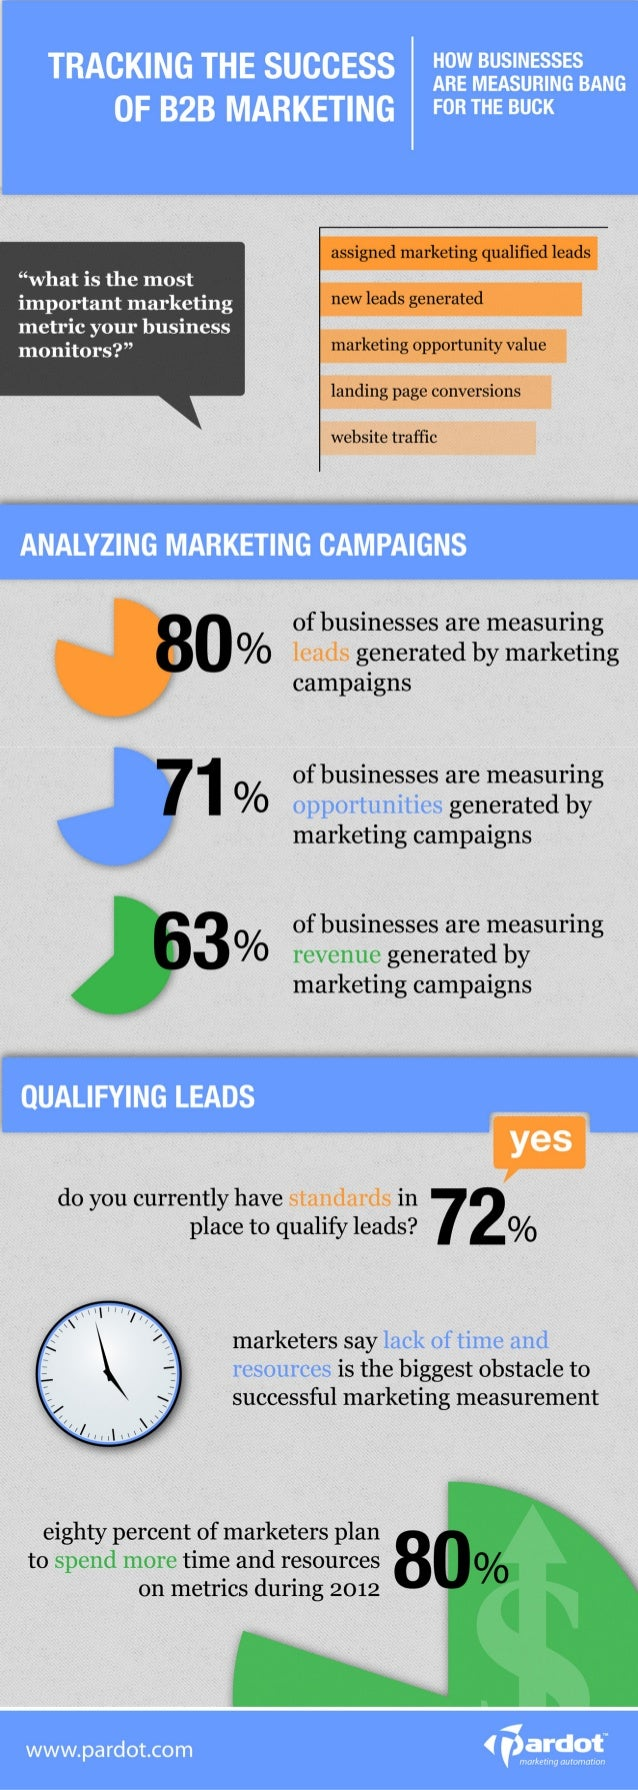 Tracking the Success of B2B Marketing [Infographic]